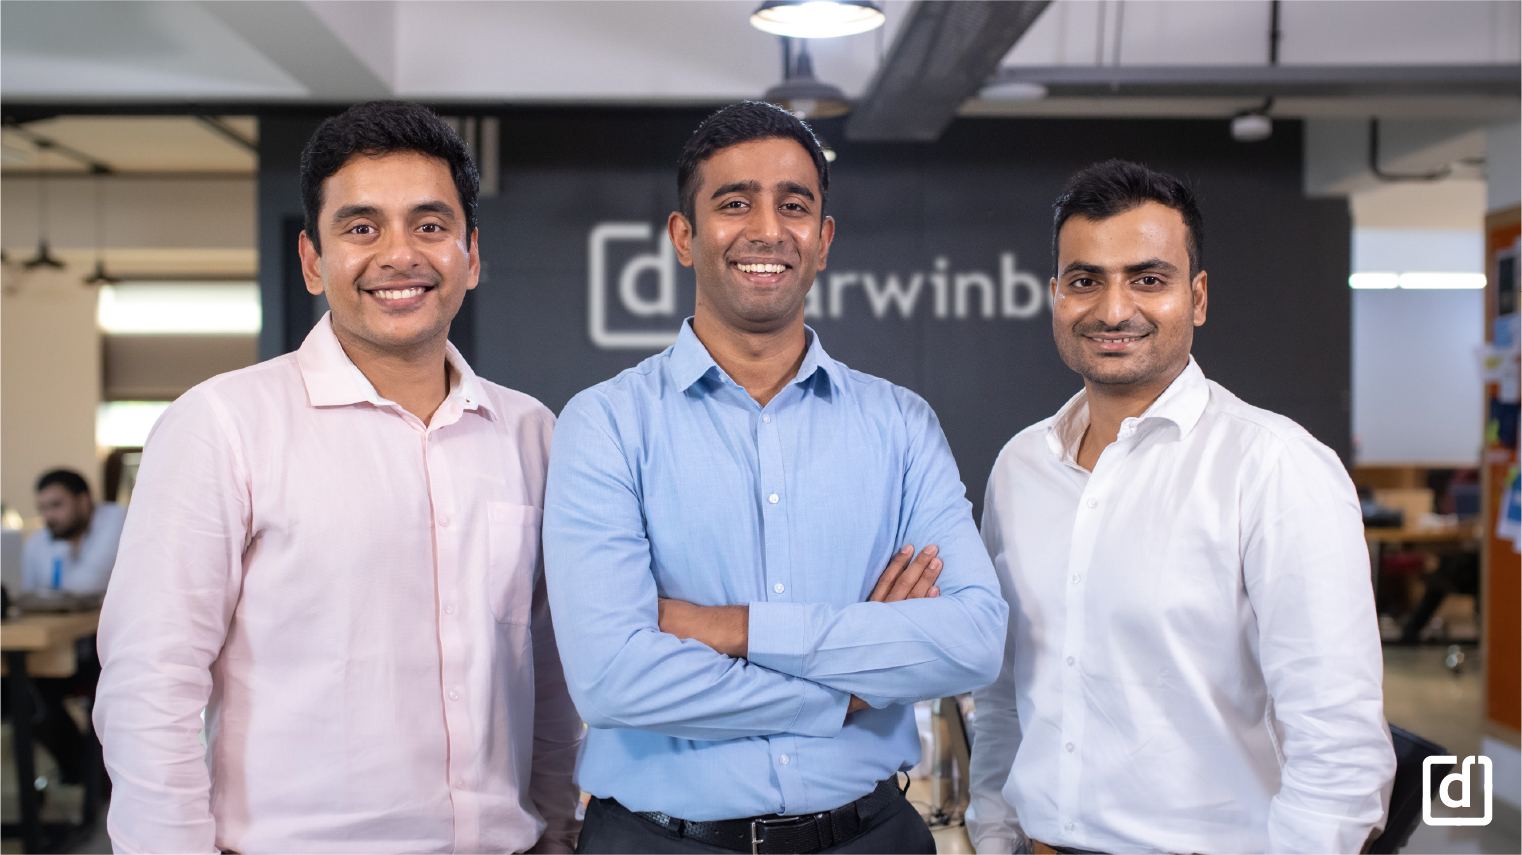 Darwinbox raises $15 Million Series B Funding from Sequoia India & Others